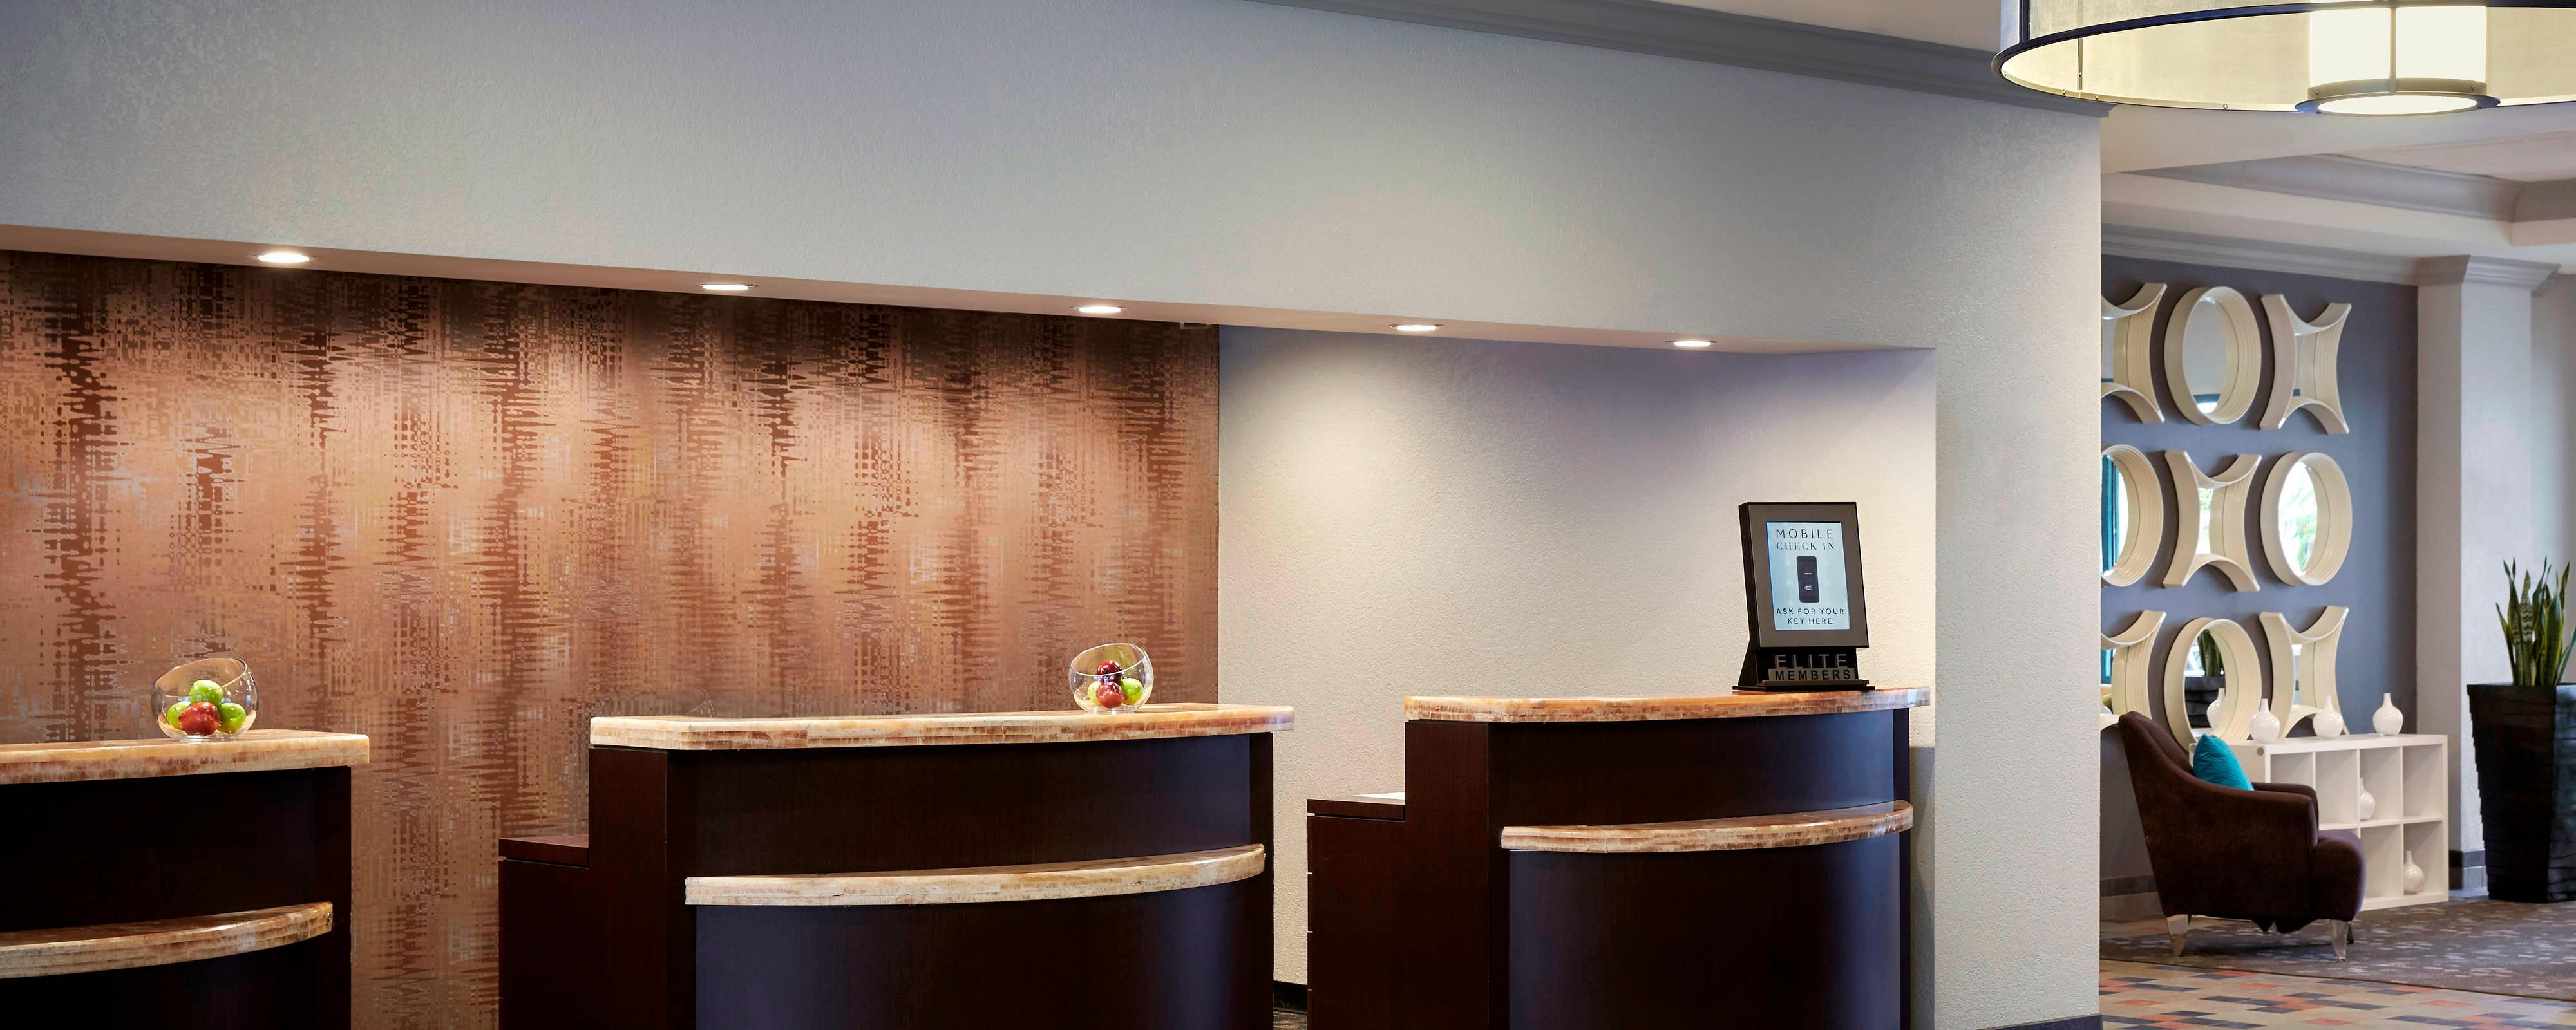 Costa Mesa Marriott Front Desk